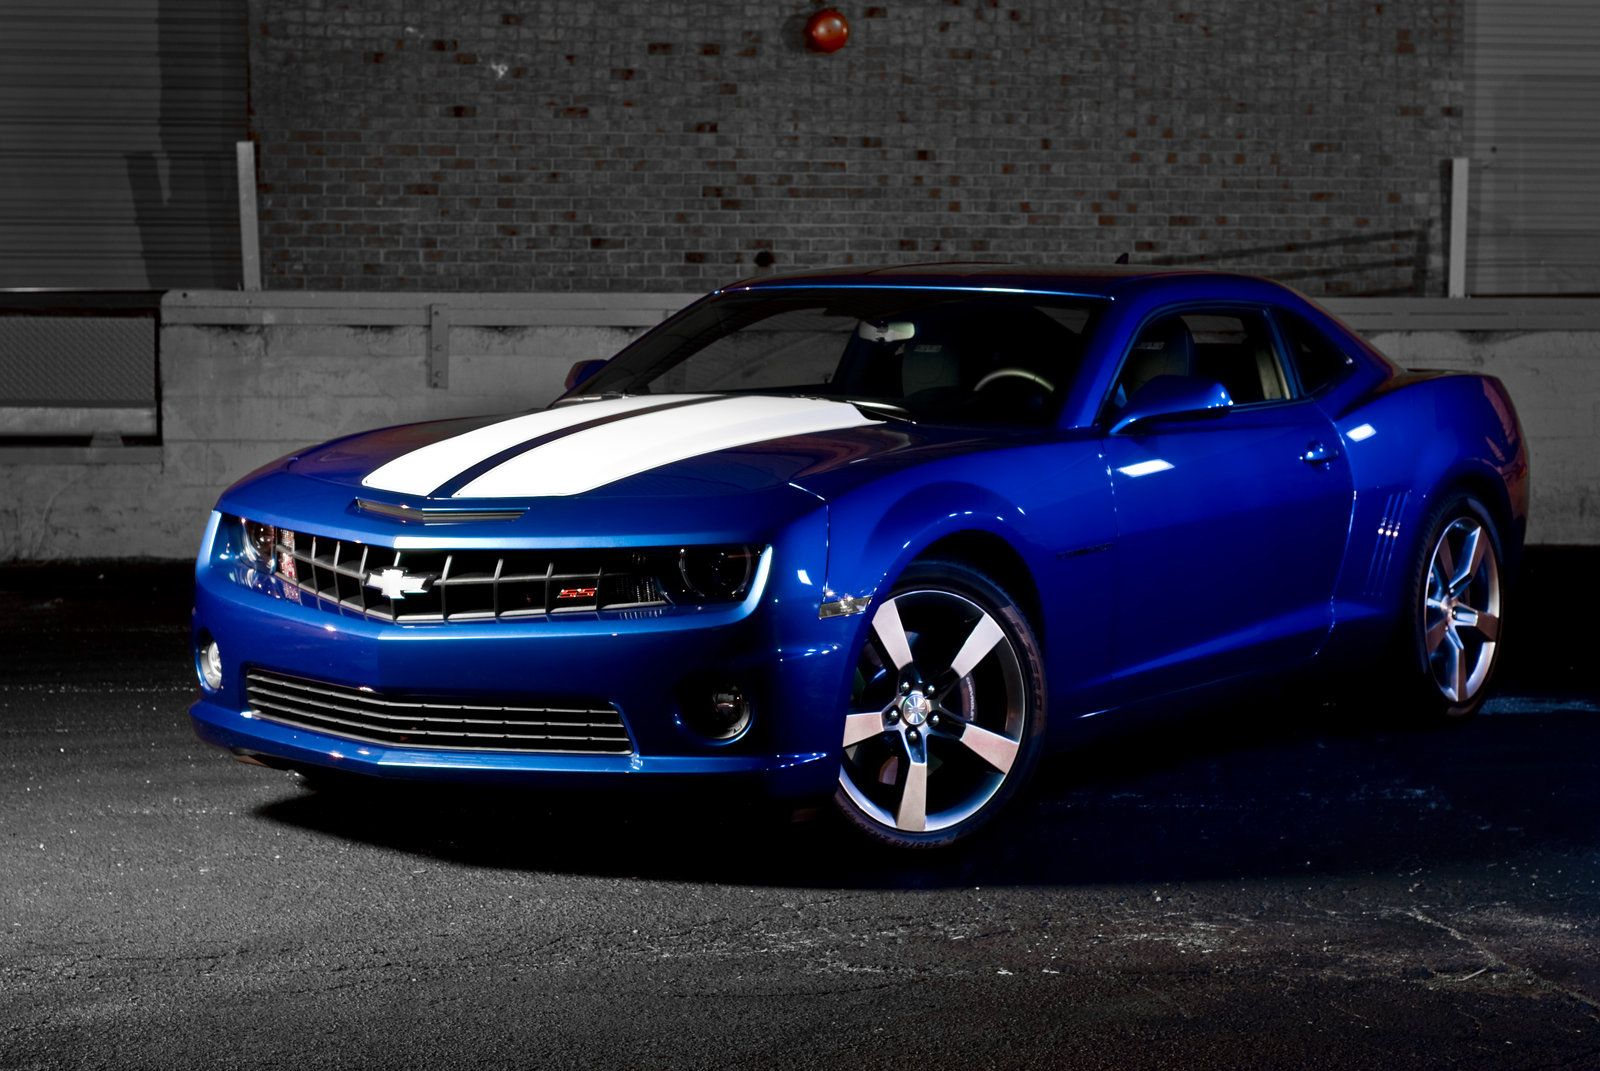 Blue Camaro Ss With White Rally Stripes Awesome Cars